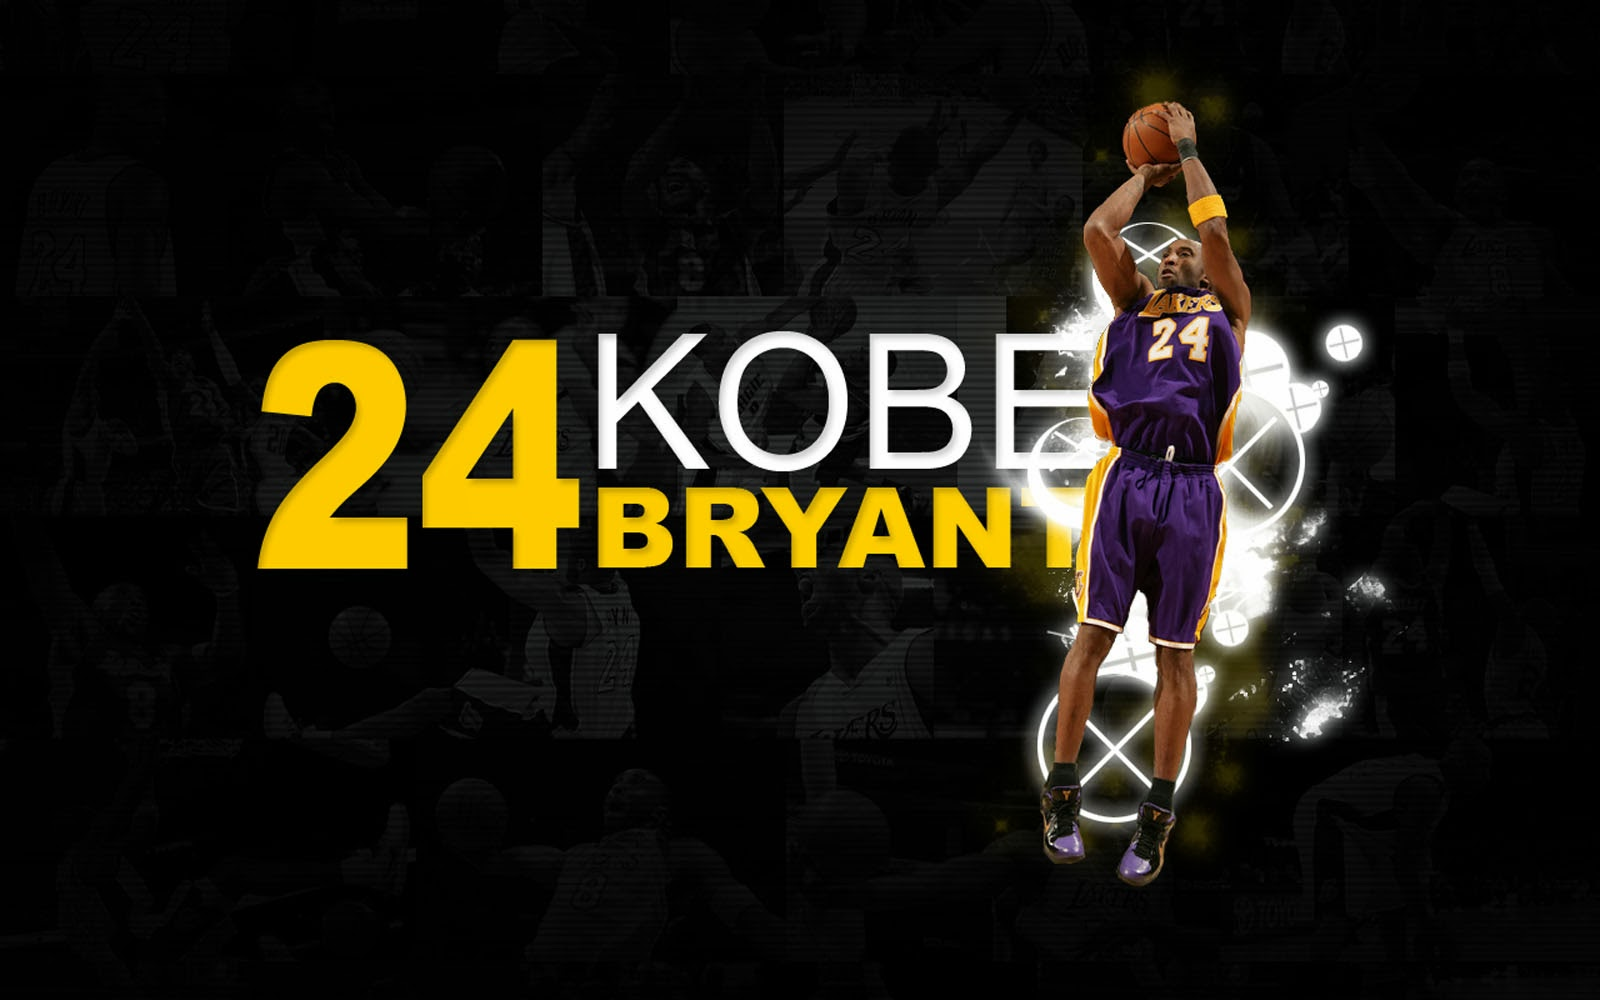 kobe bryant nice wallpapers - photo #5